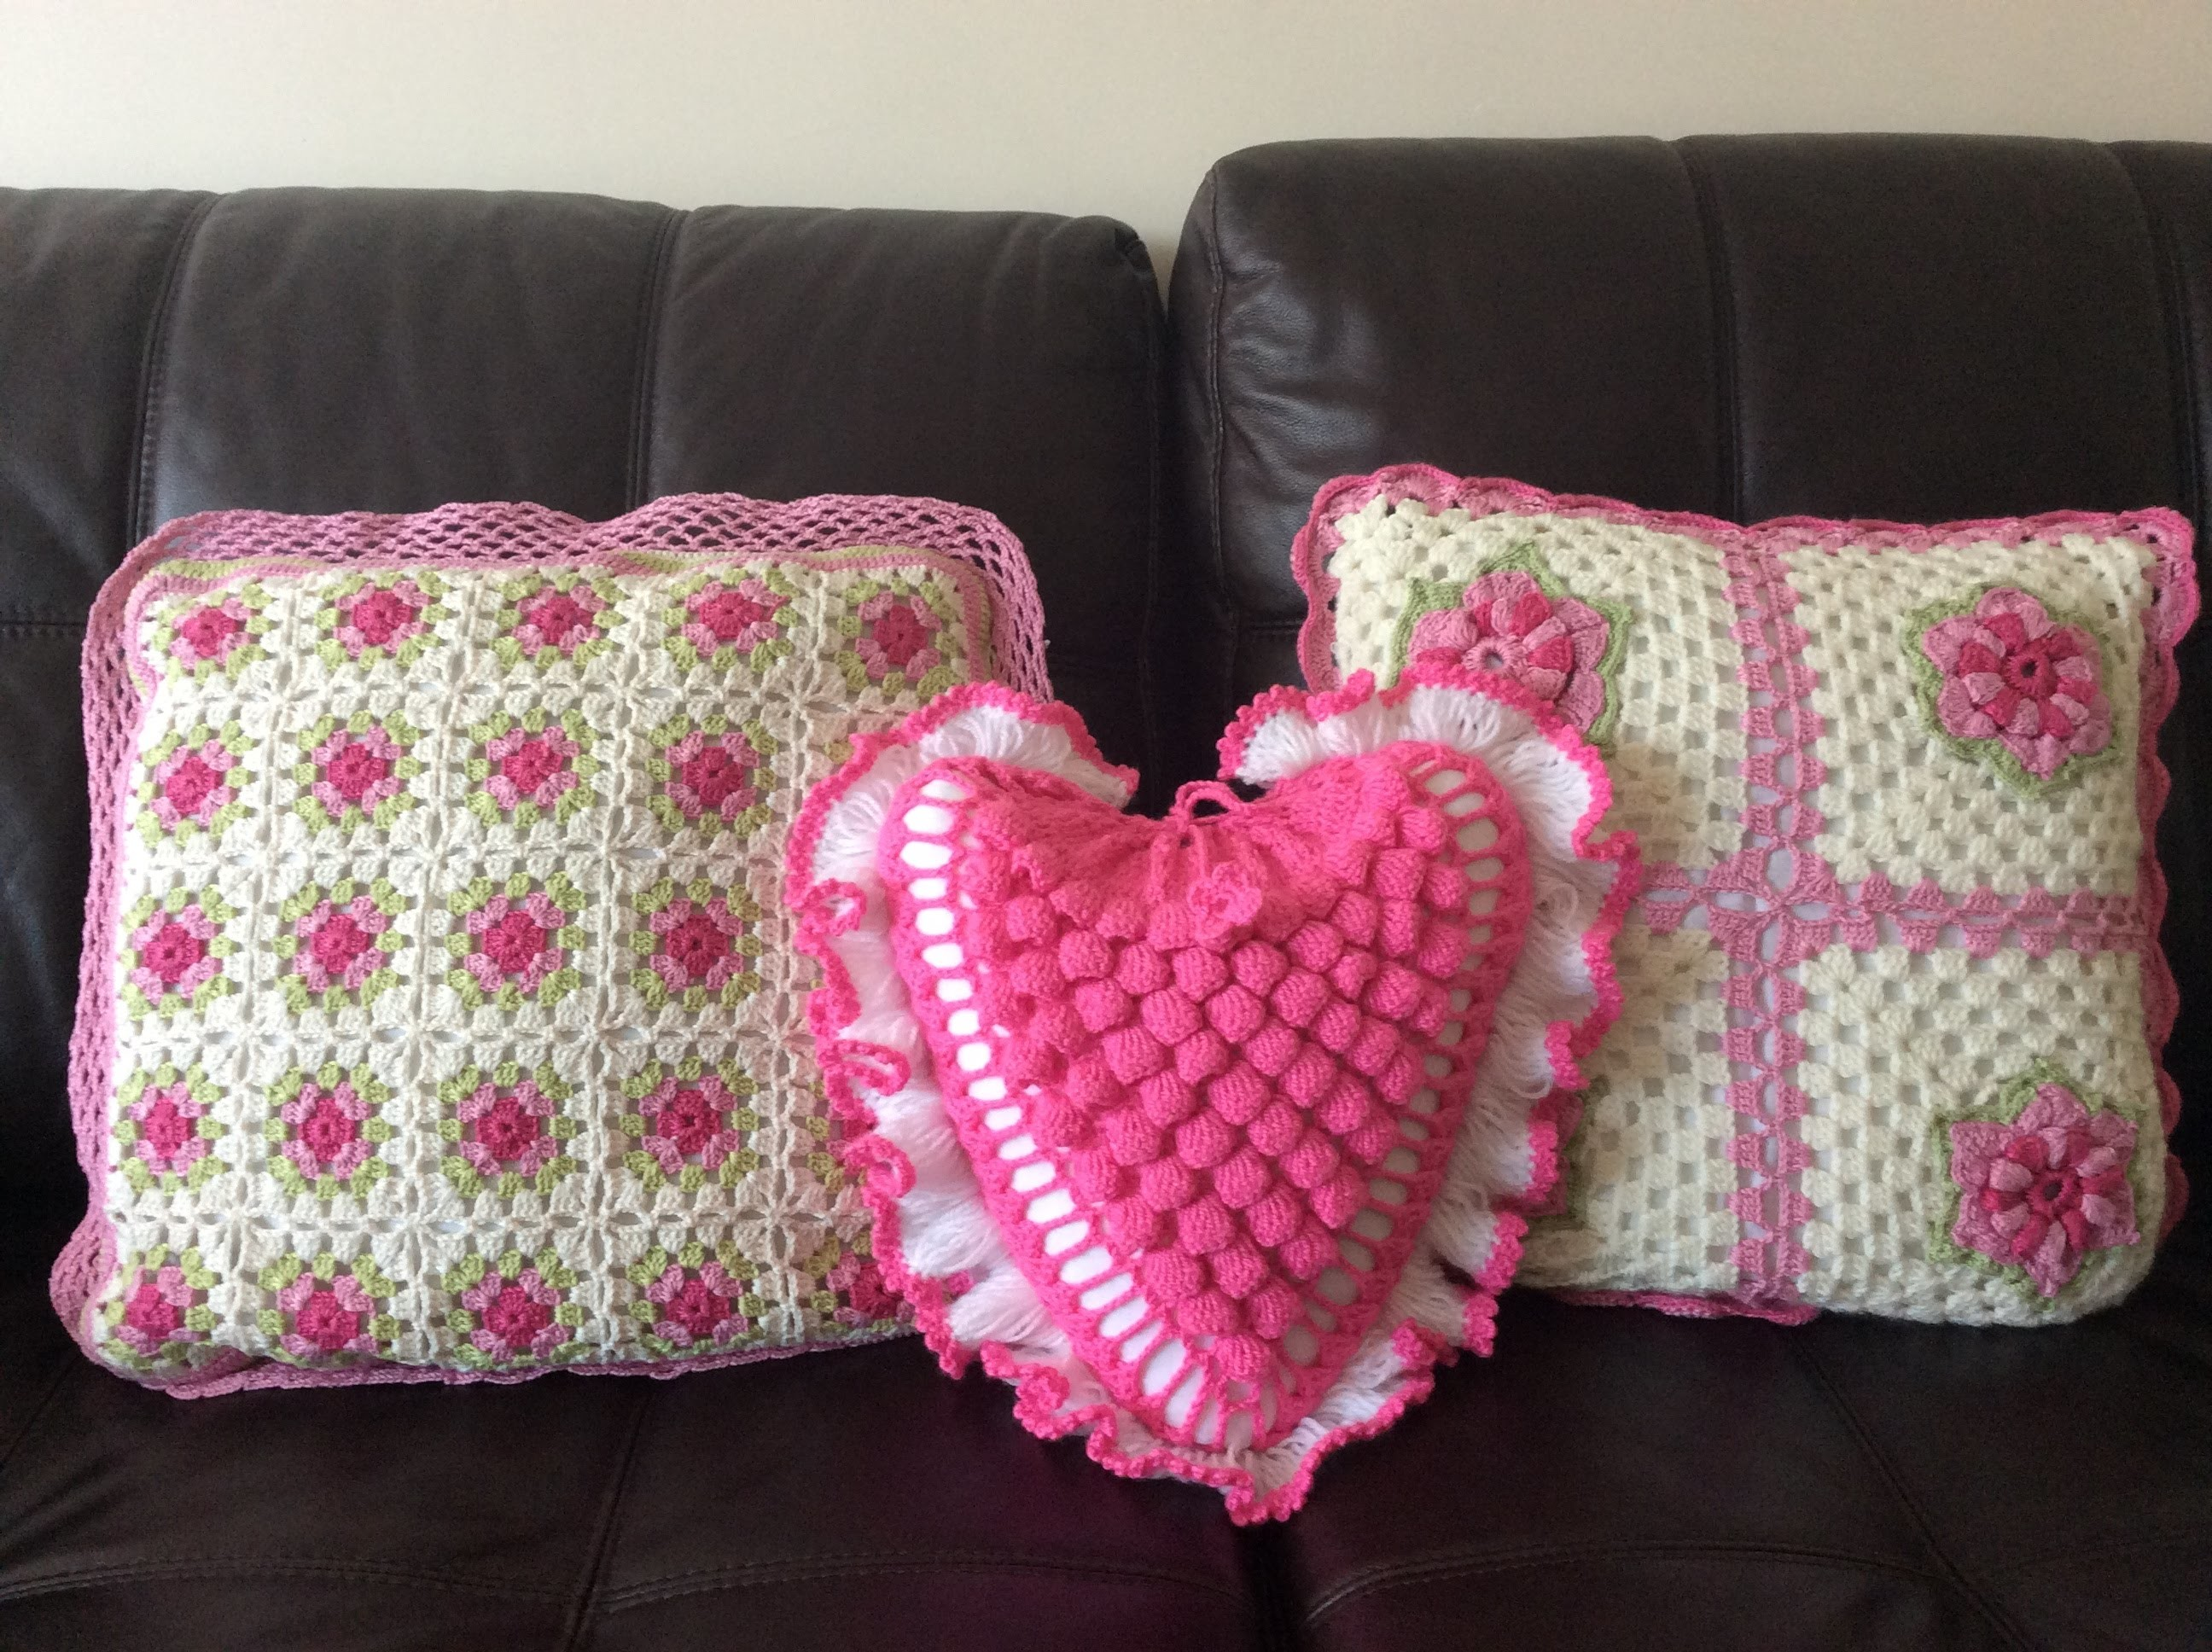 Heart shaped cushion made from crochet pt 4 of 4 by Lin